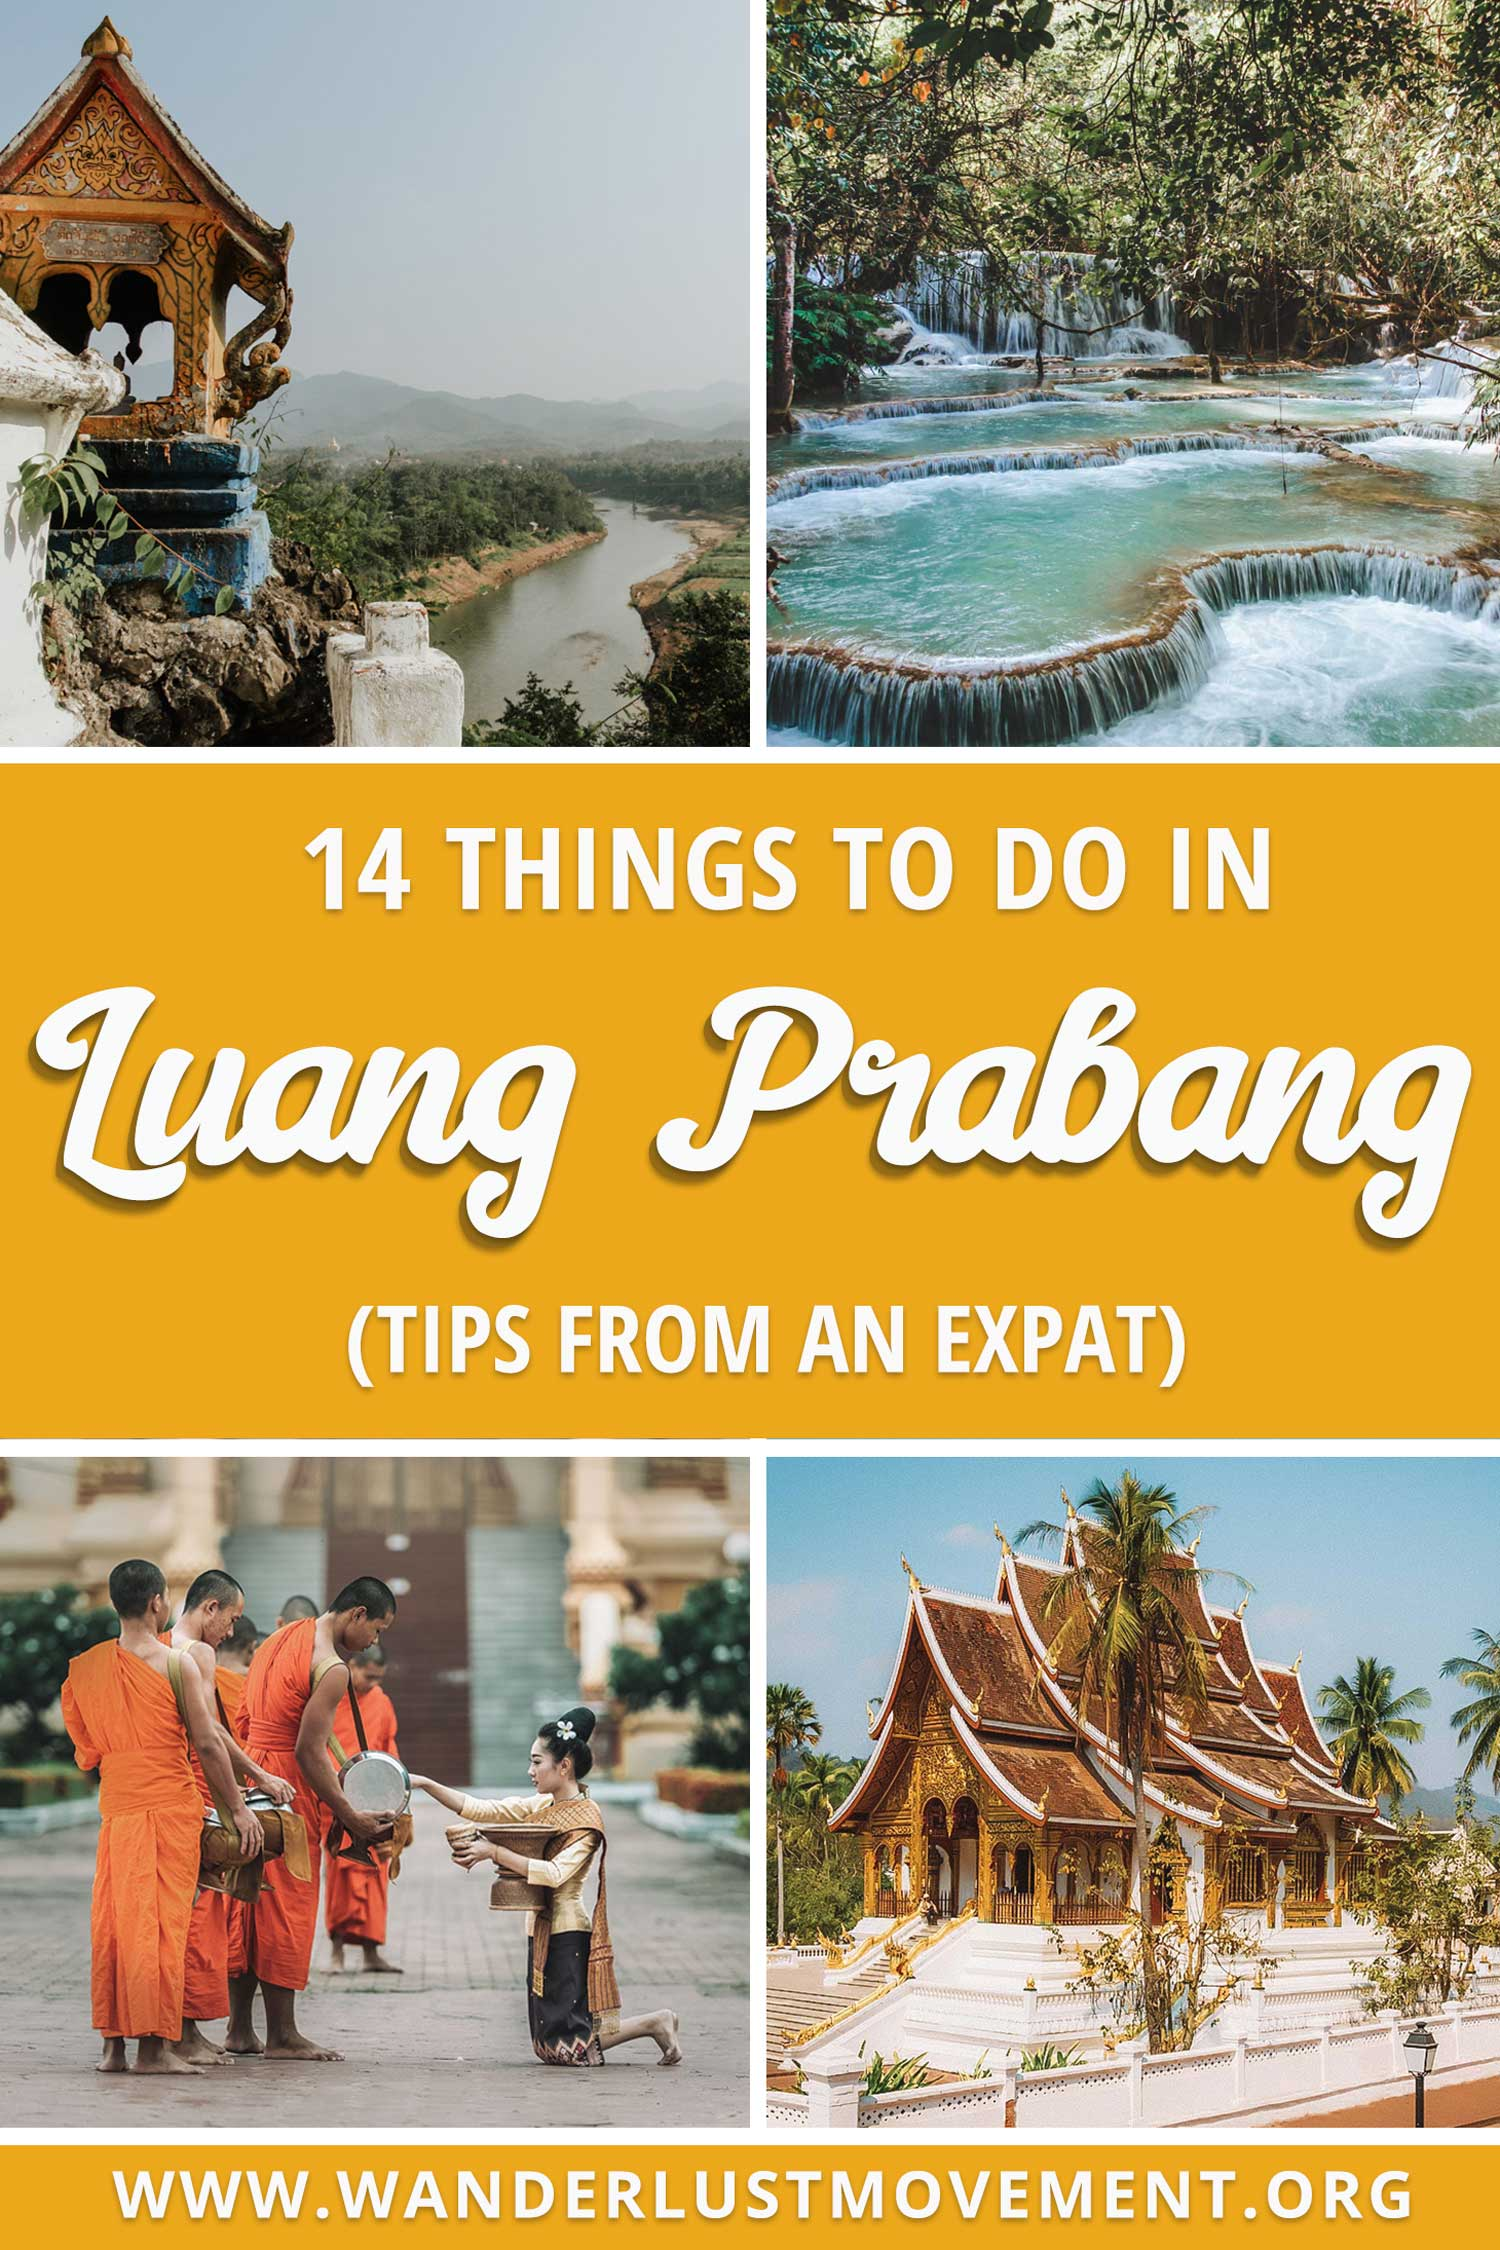 The ultimate list of things to do in Luang Prabang from an expat! From chasing gorgeous waterfalls to visiting ancient temples and a few off the beaten track surprises, here are some of the top things to do in the UNESCO World Heritage town of Luang Prabang! #laos #luangprabang #travel